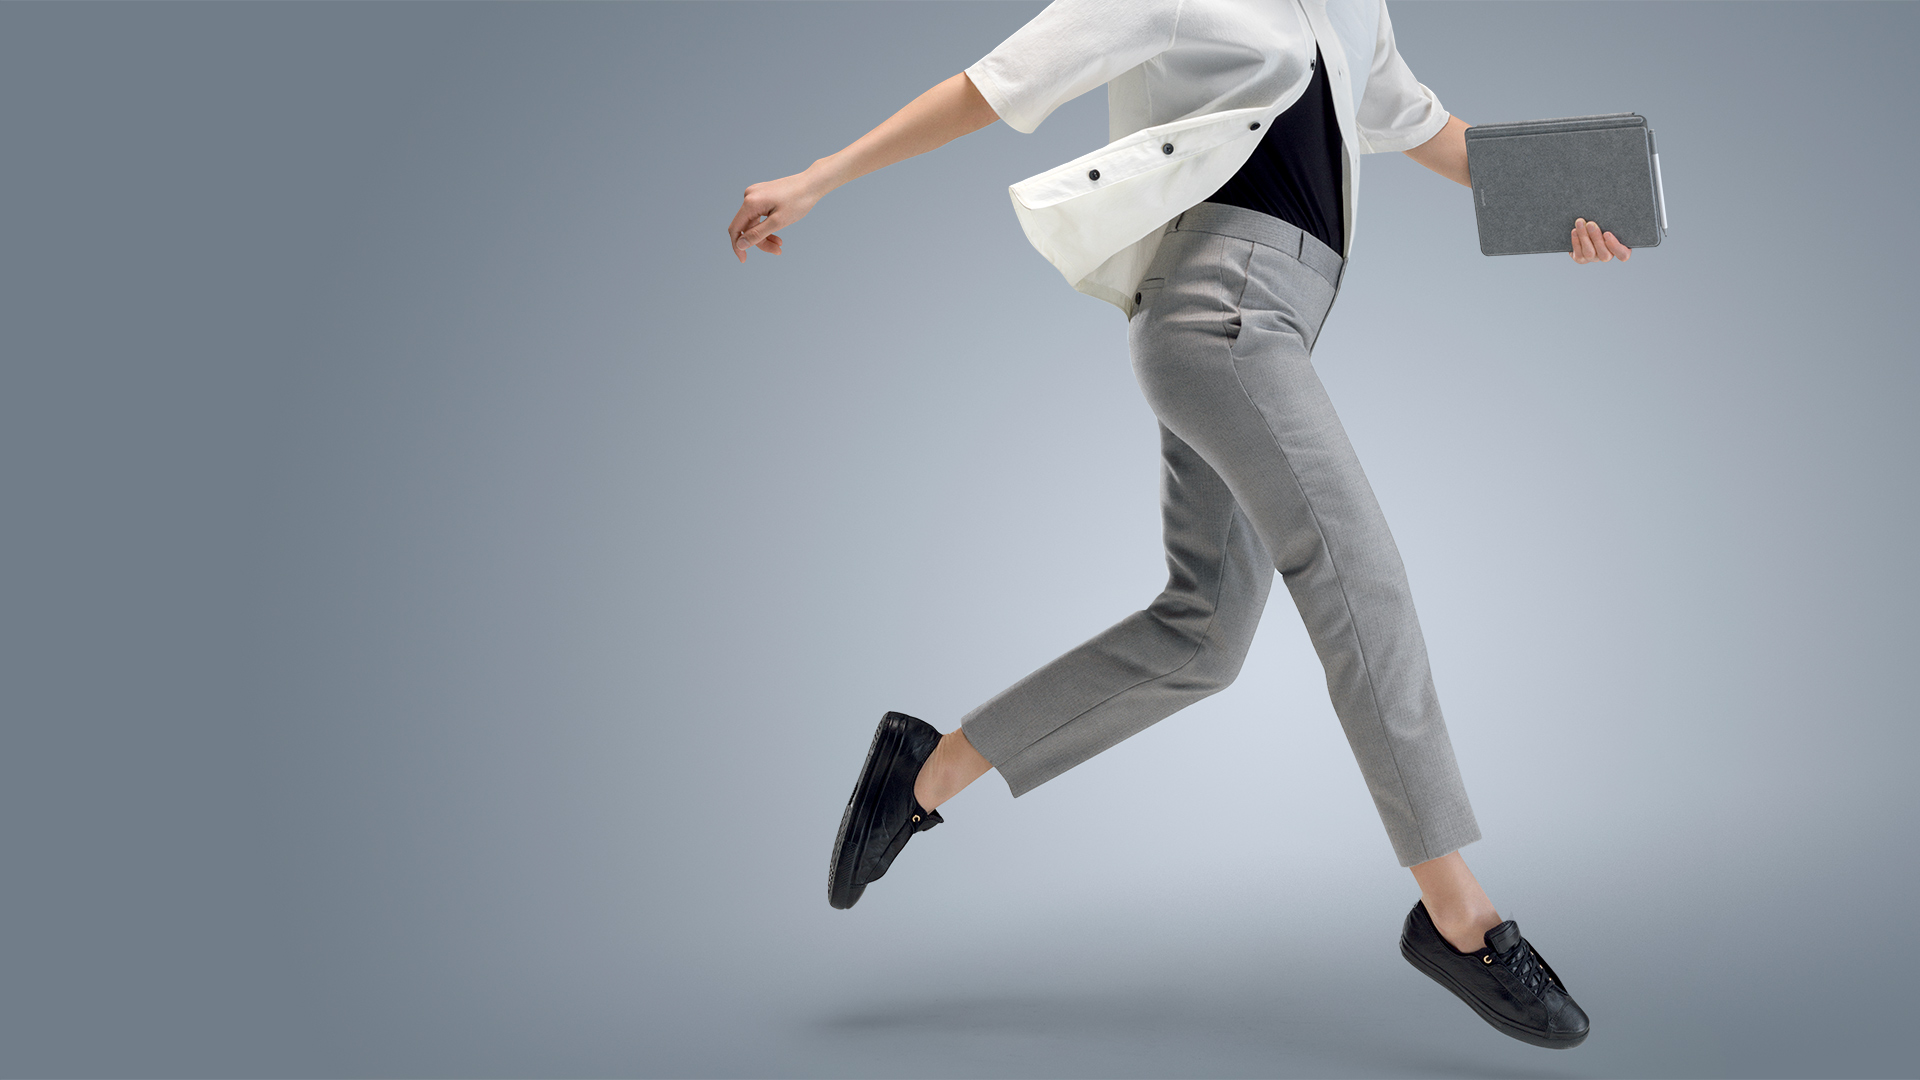 A woman leaps as she carries Surface Go in tablet mode in one hand